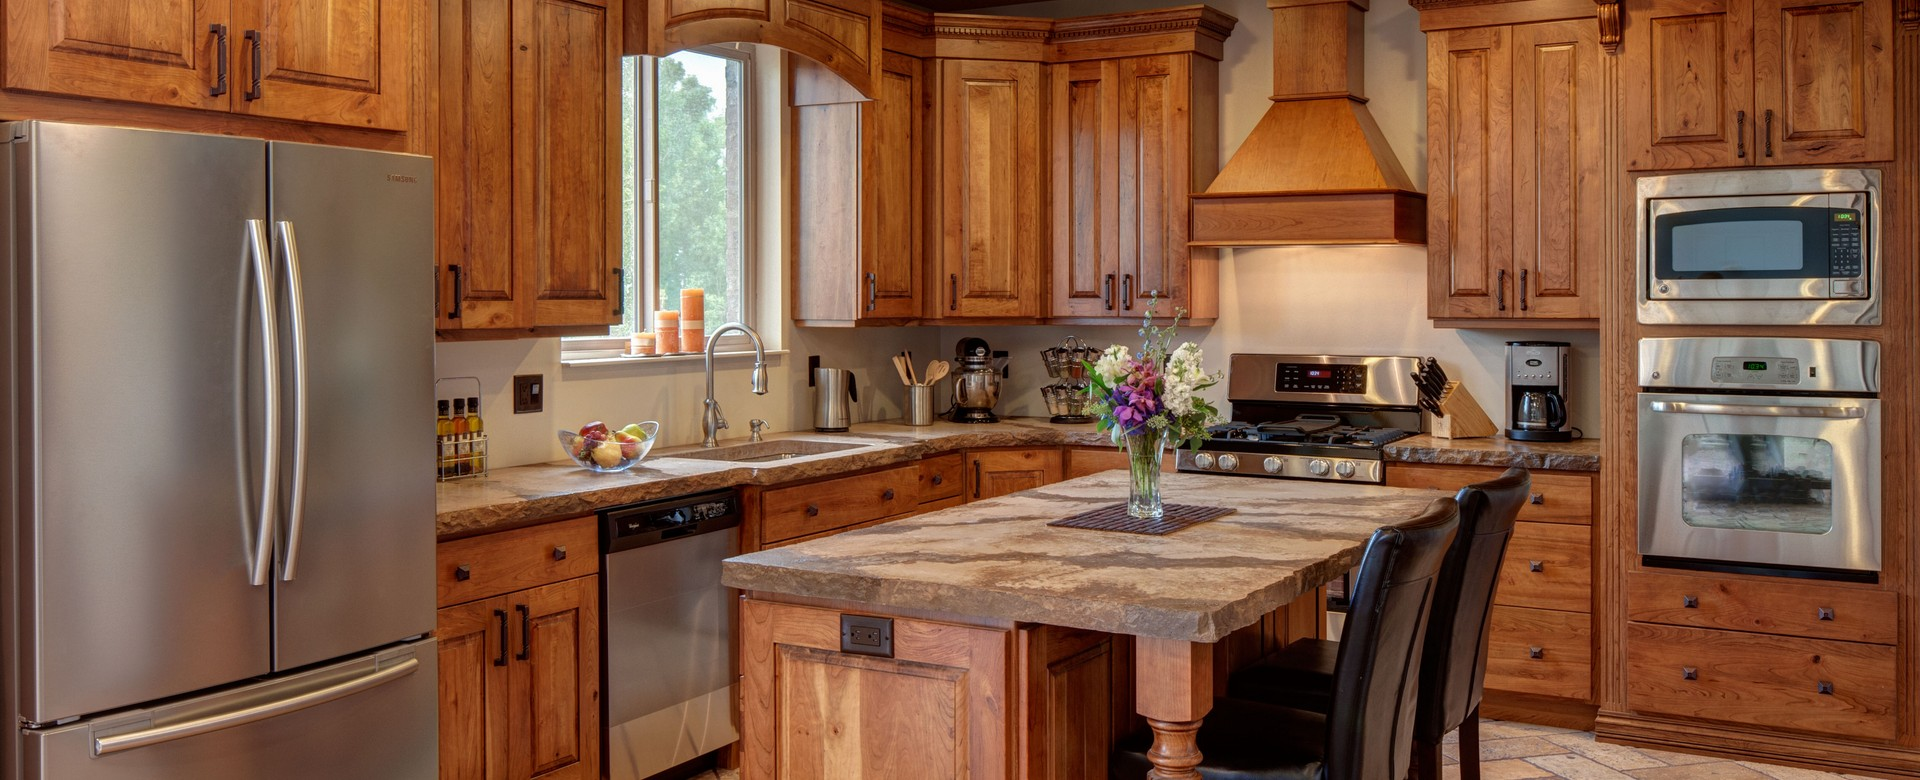 Stain Particle Board Kitchen Cabinets Cabinet Manufacturers In Salt Lake City, Utah. We Make